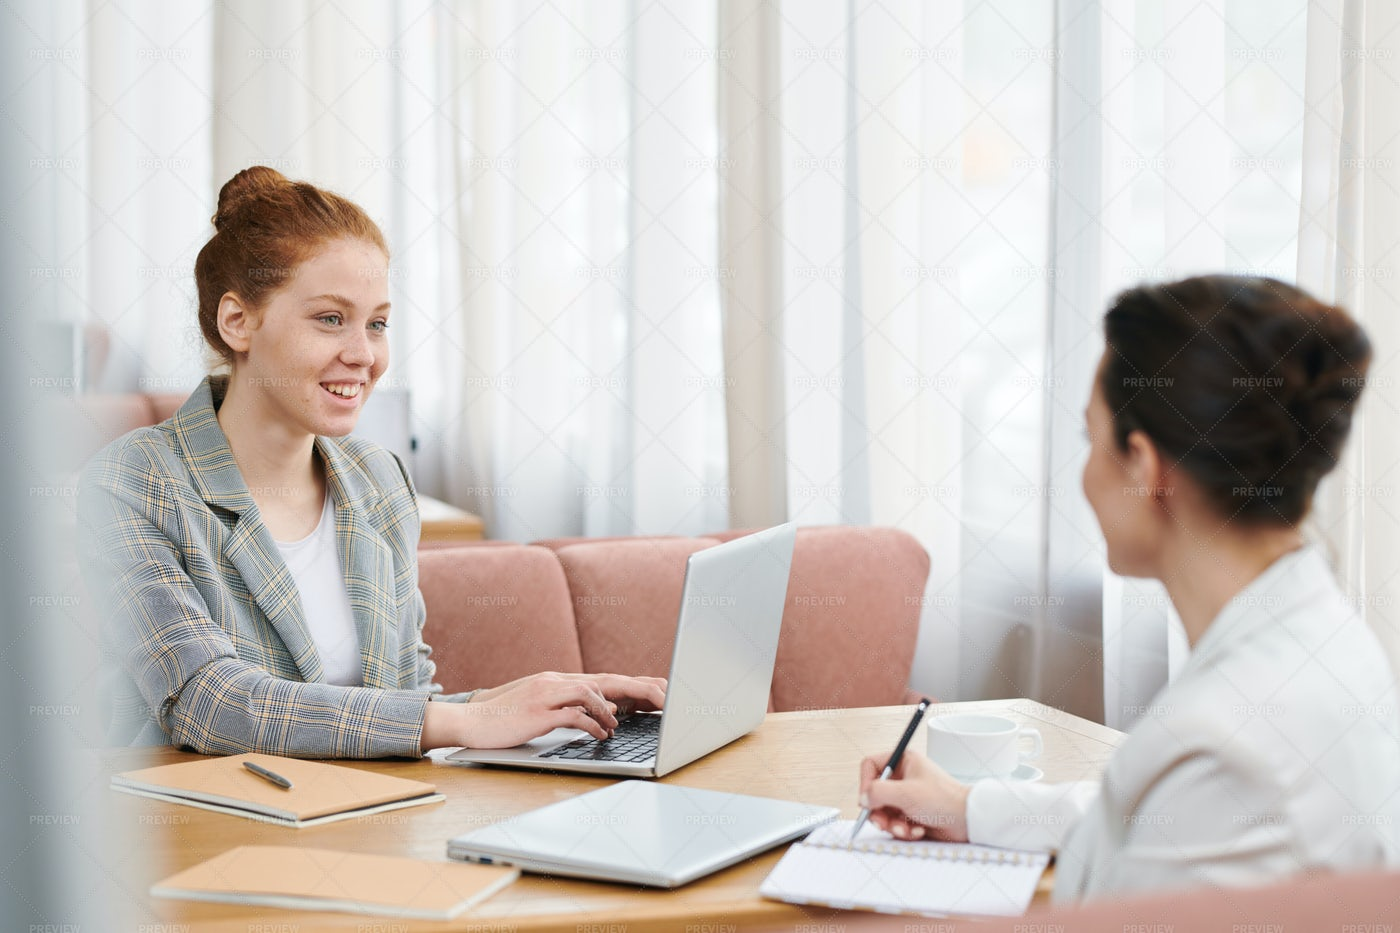 Meeting With Adviser In Cafe: Stock Photos